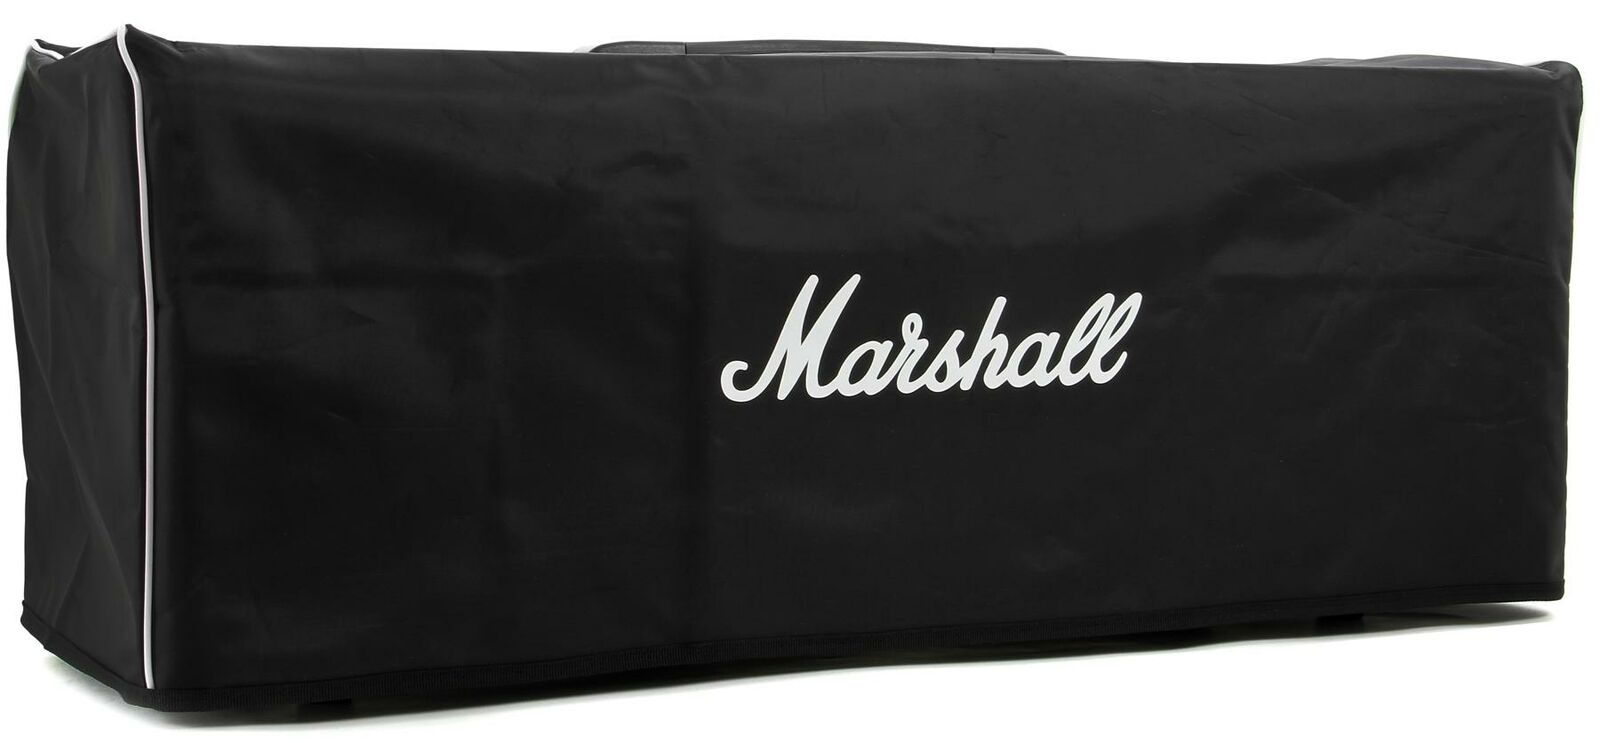 Marshall DSL100 Head Black Vinyl Amplifier Cover No. 115 M-COVR-00115